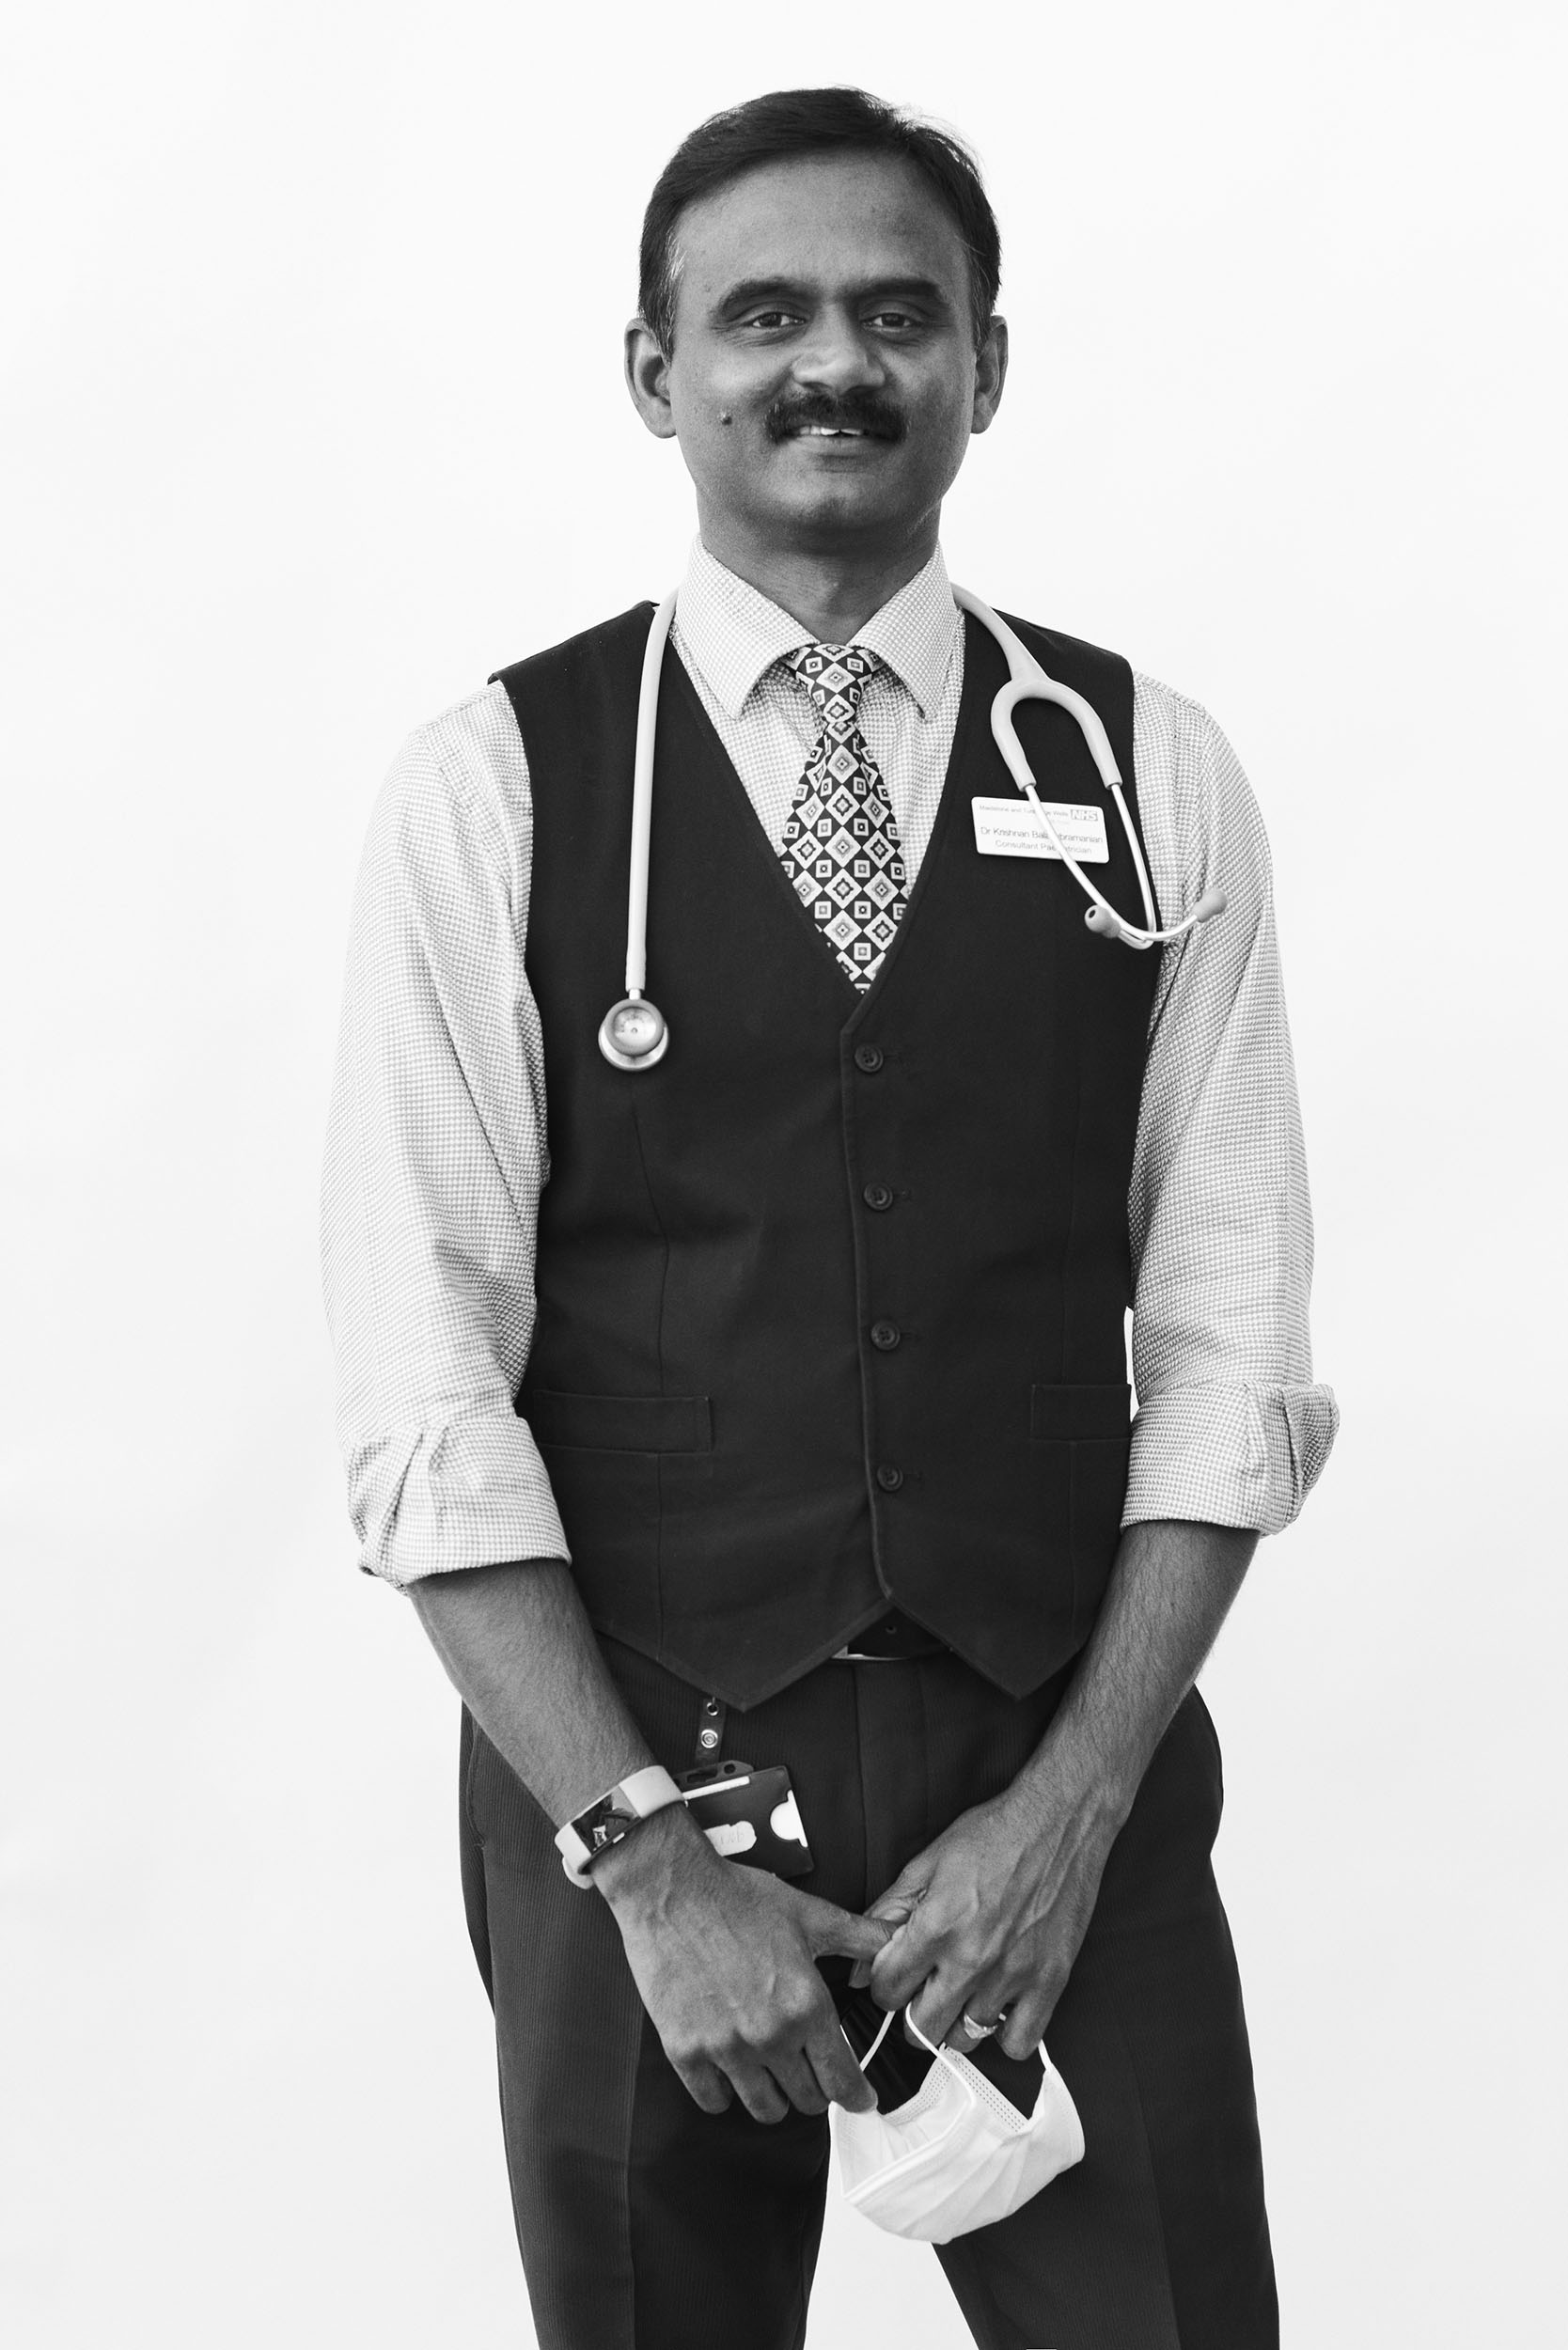 Photographer Edd Horder honors the hospital workers on Britain's COVID front lines